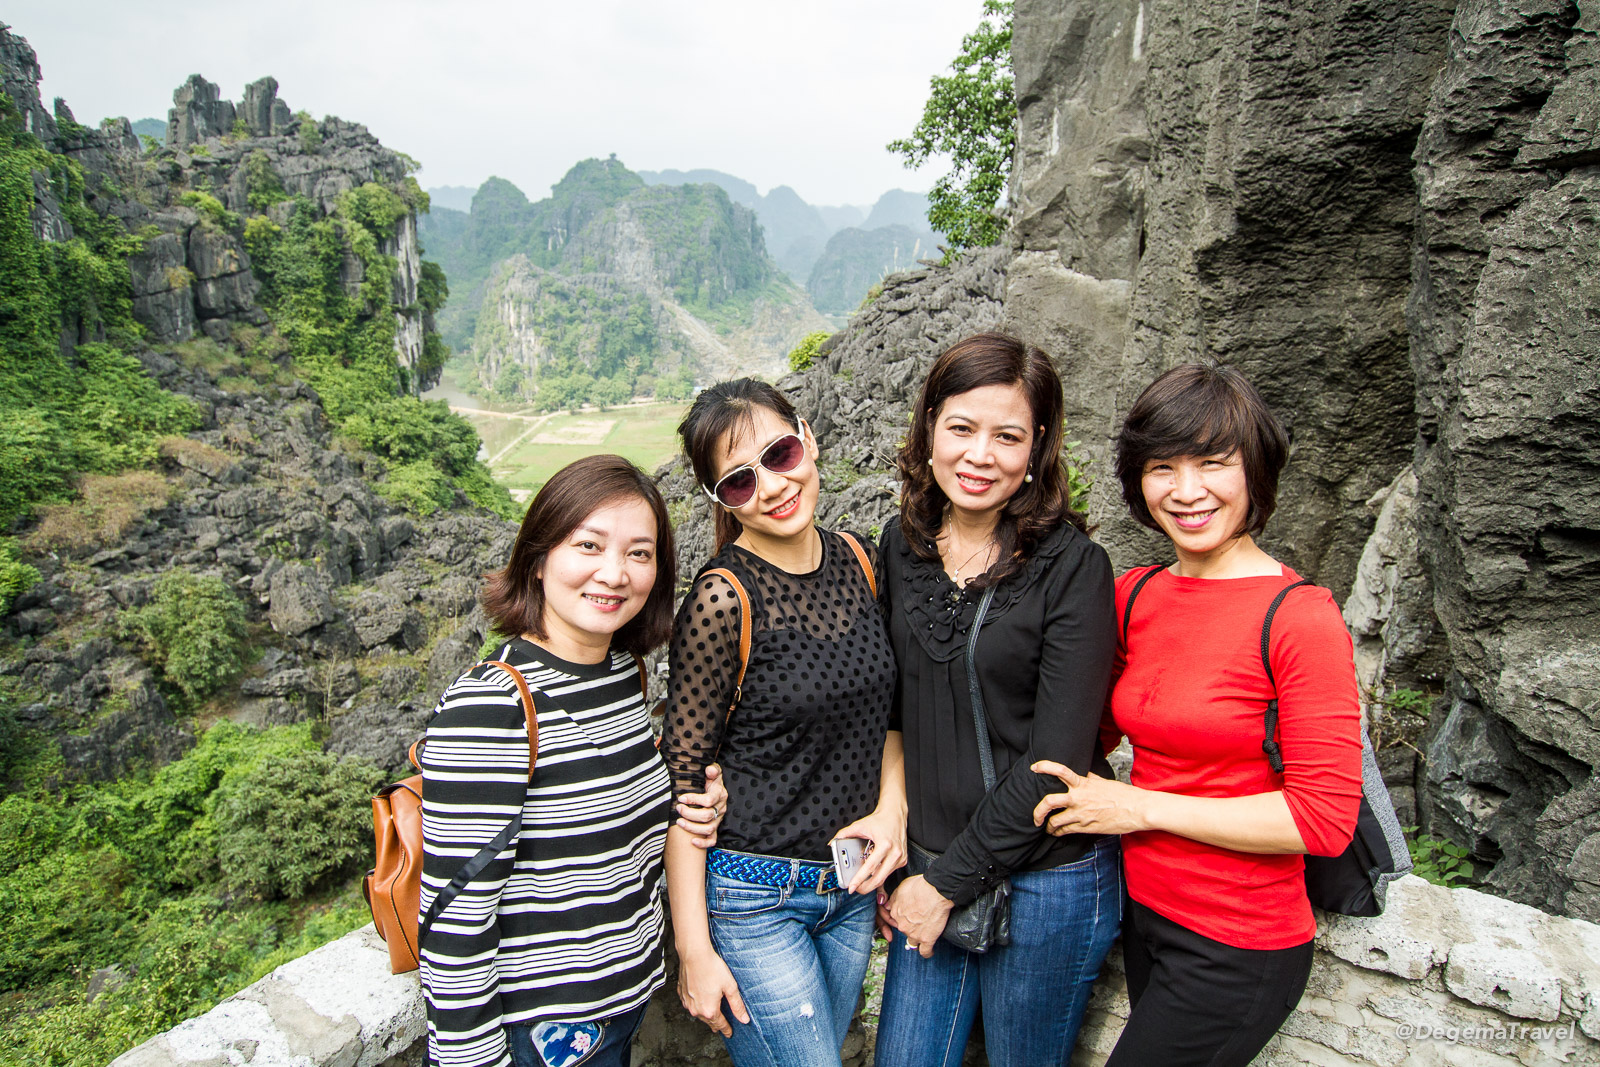 The ladies from Vietnam Airlines in Hang Mua, Tam Coc, Vietnam